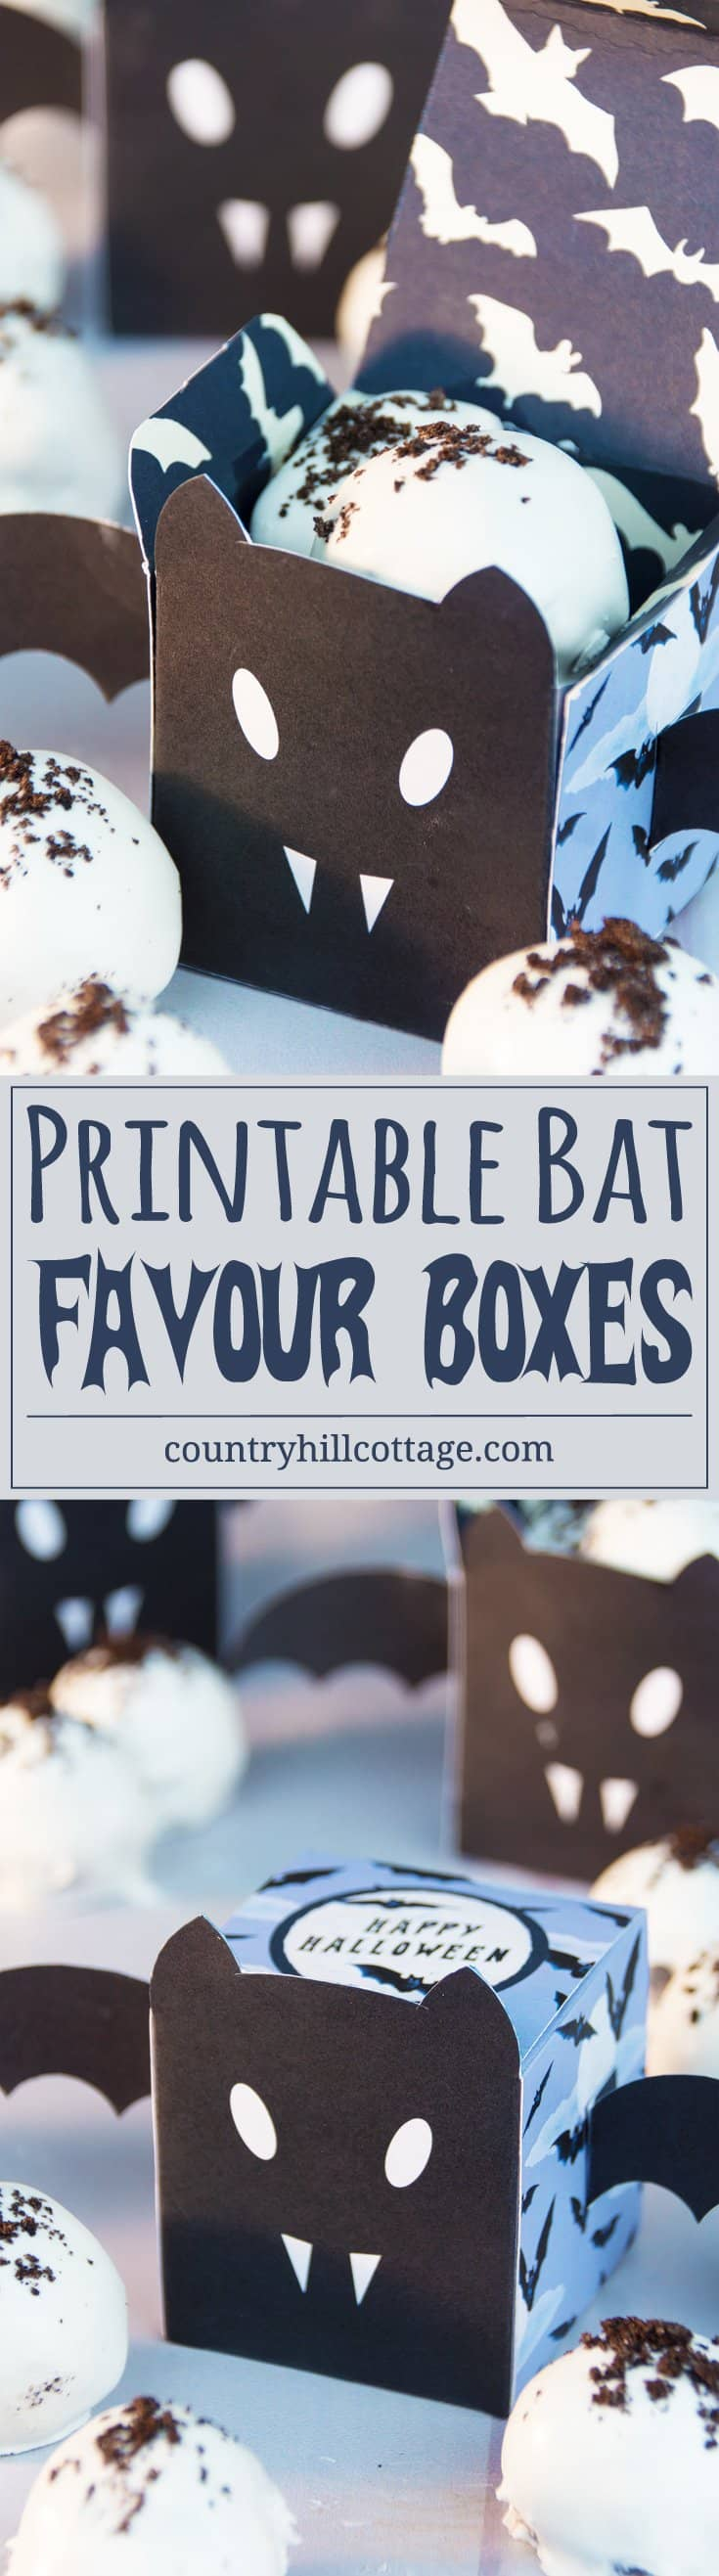 Get a free printable bat favour box to gift Halloween candy and treats! #freeibie #printble #Halloween | countryhillcottage.com